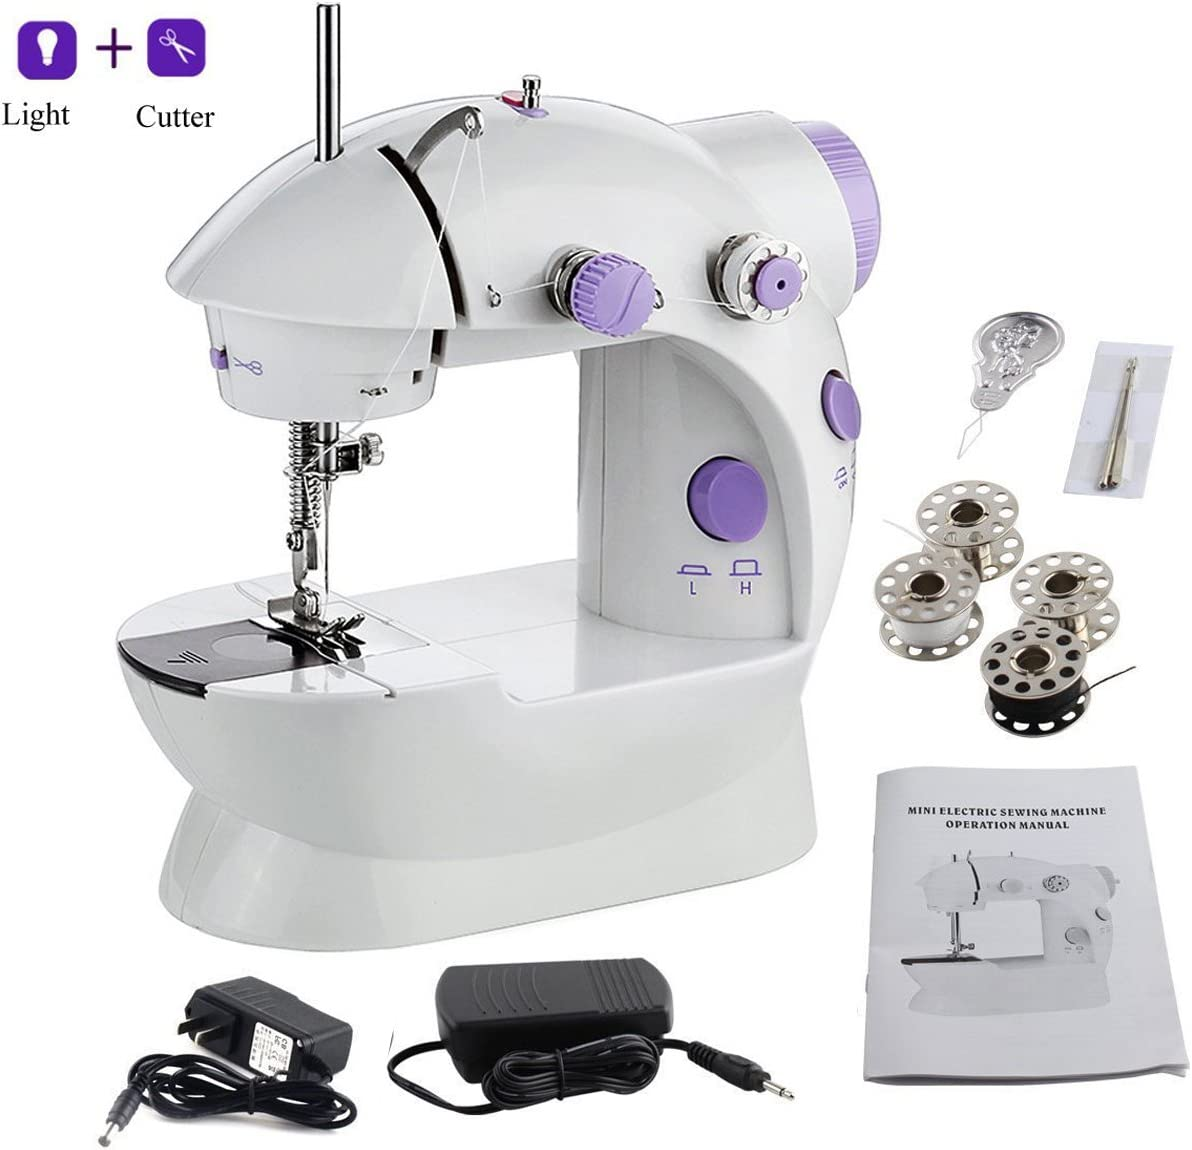 Mini Sewing Machine Portable Electric Crafting Mending Machine 2-Speed Double Thread with Light for Beginner